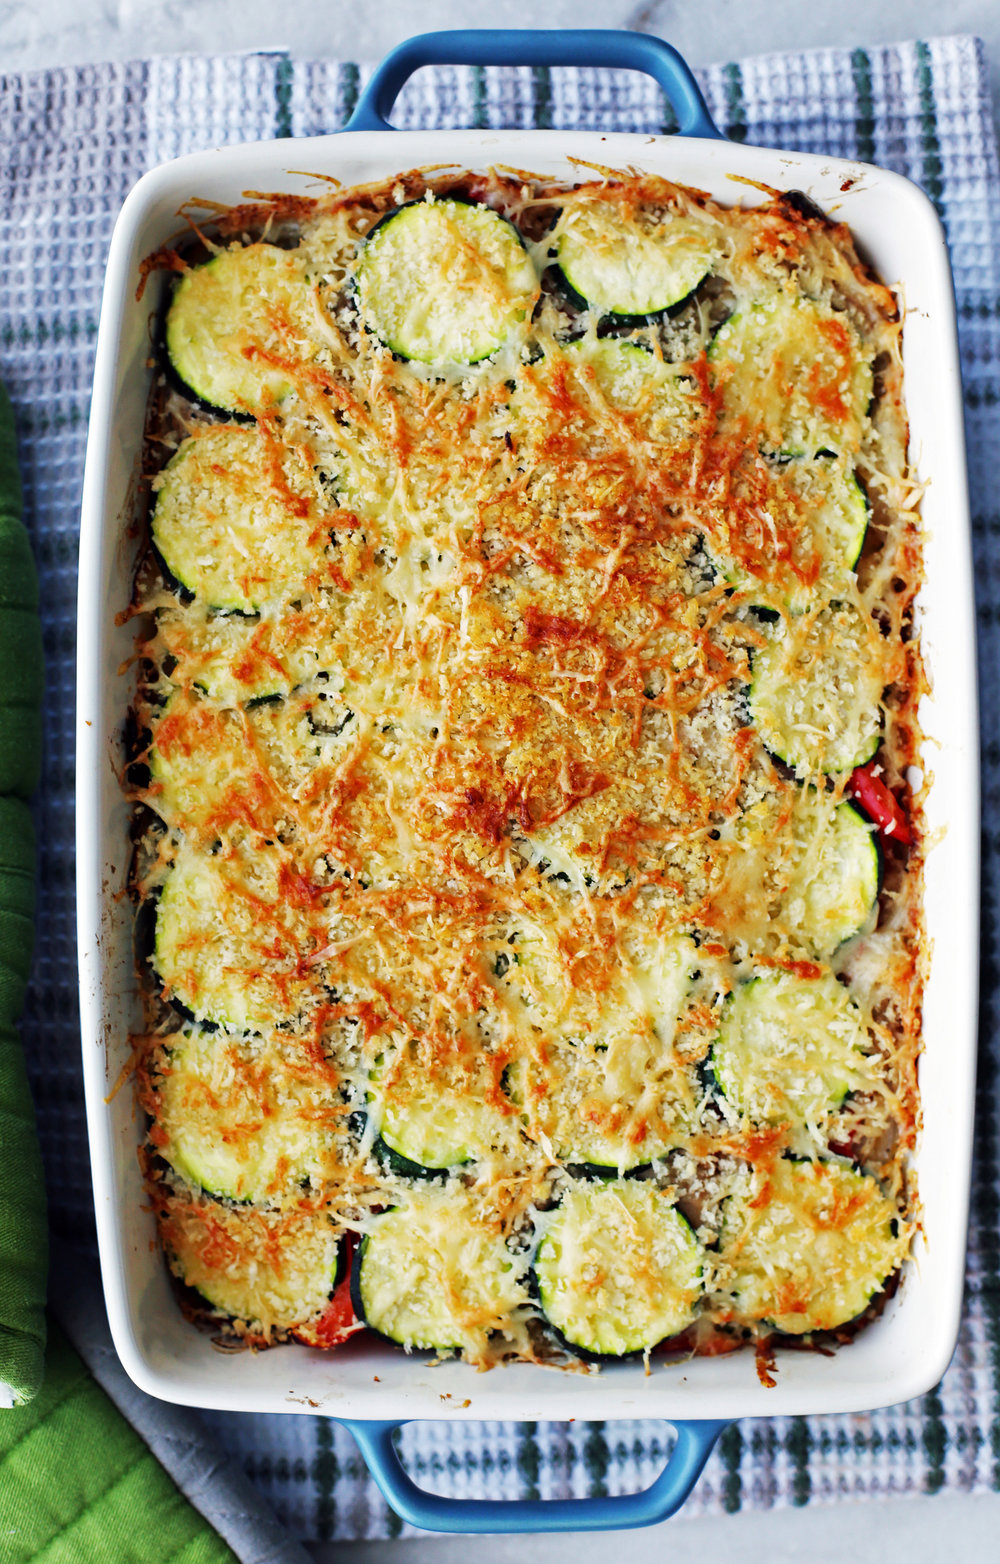 Baked Zucchini Gratin with Gruyère and Panko Breadcrumbs in a large rectangular casserole dish.